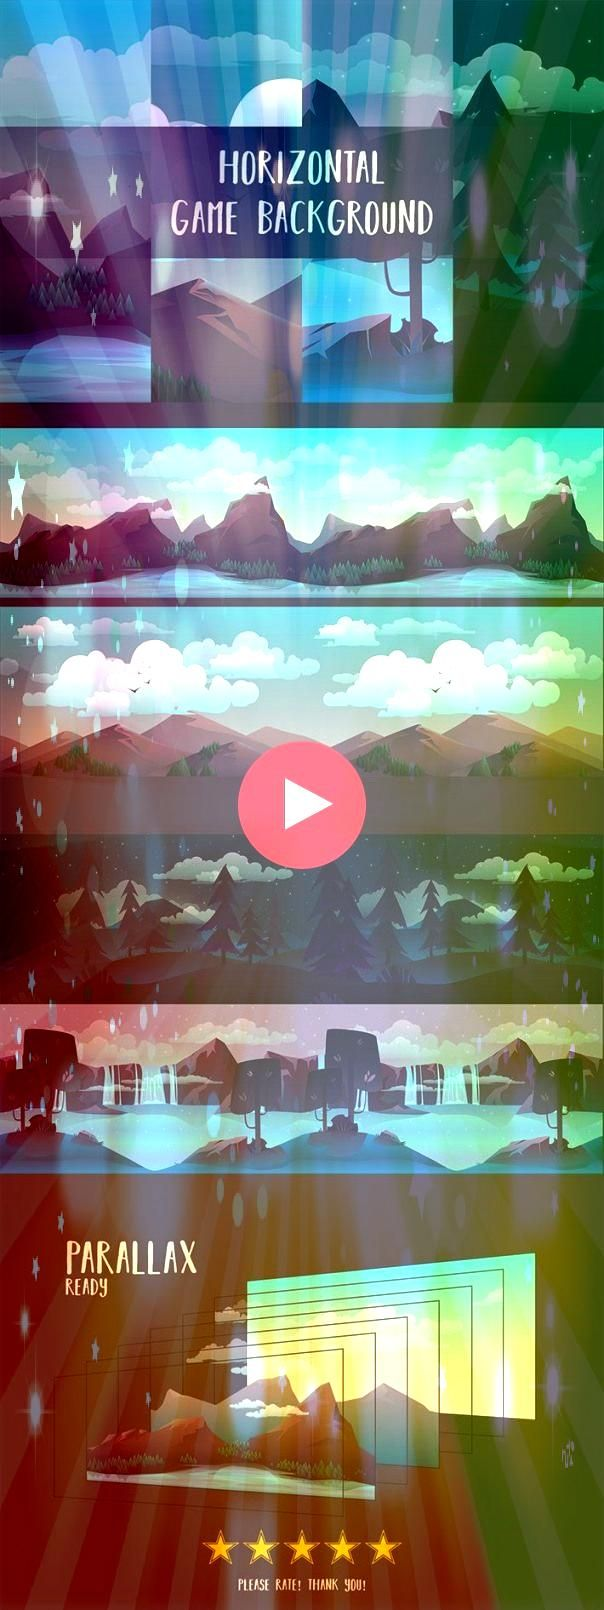 is a set of highquality Free Horizontal 2D Game BackgroundsHere is a set of highquality Free Horizontal 2D Game Backgrounds Mounts make every game better no Game Backgrou...